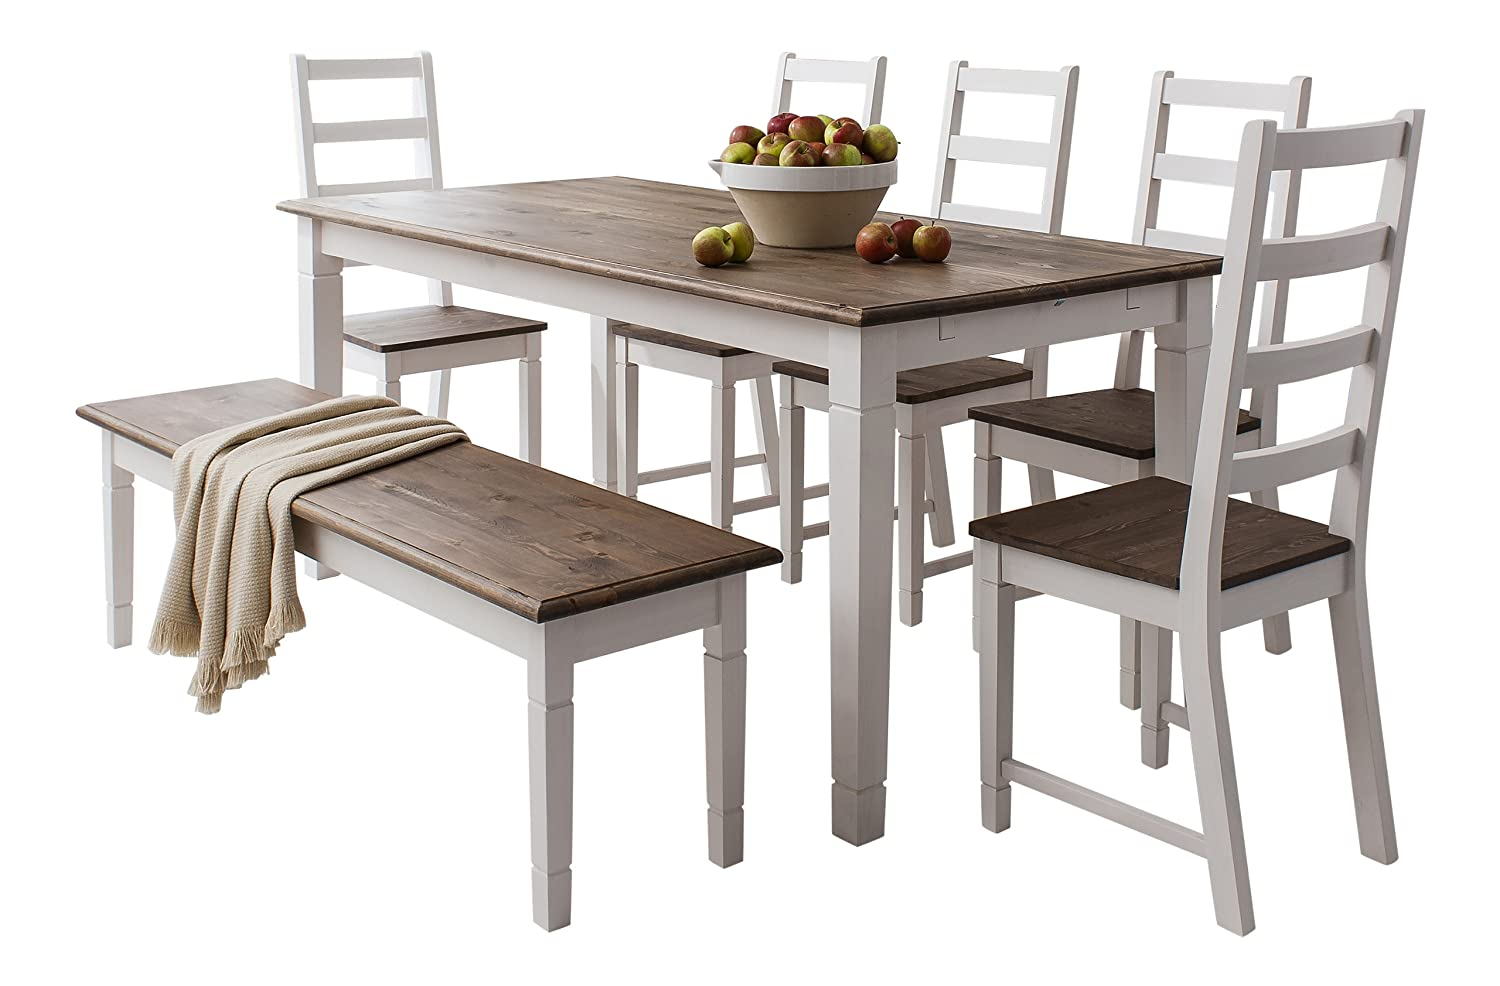 pdp co ca reviews table dining wayfair home wolfe furniture darby